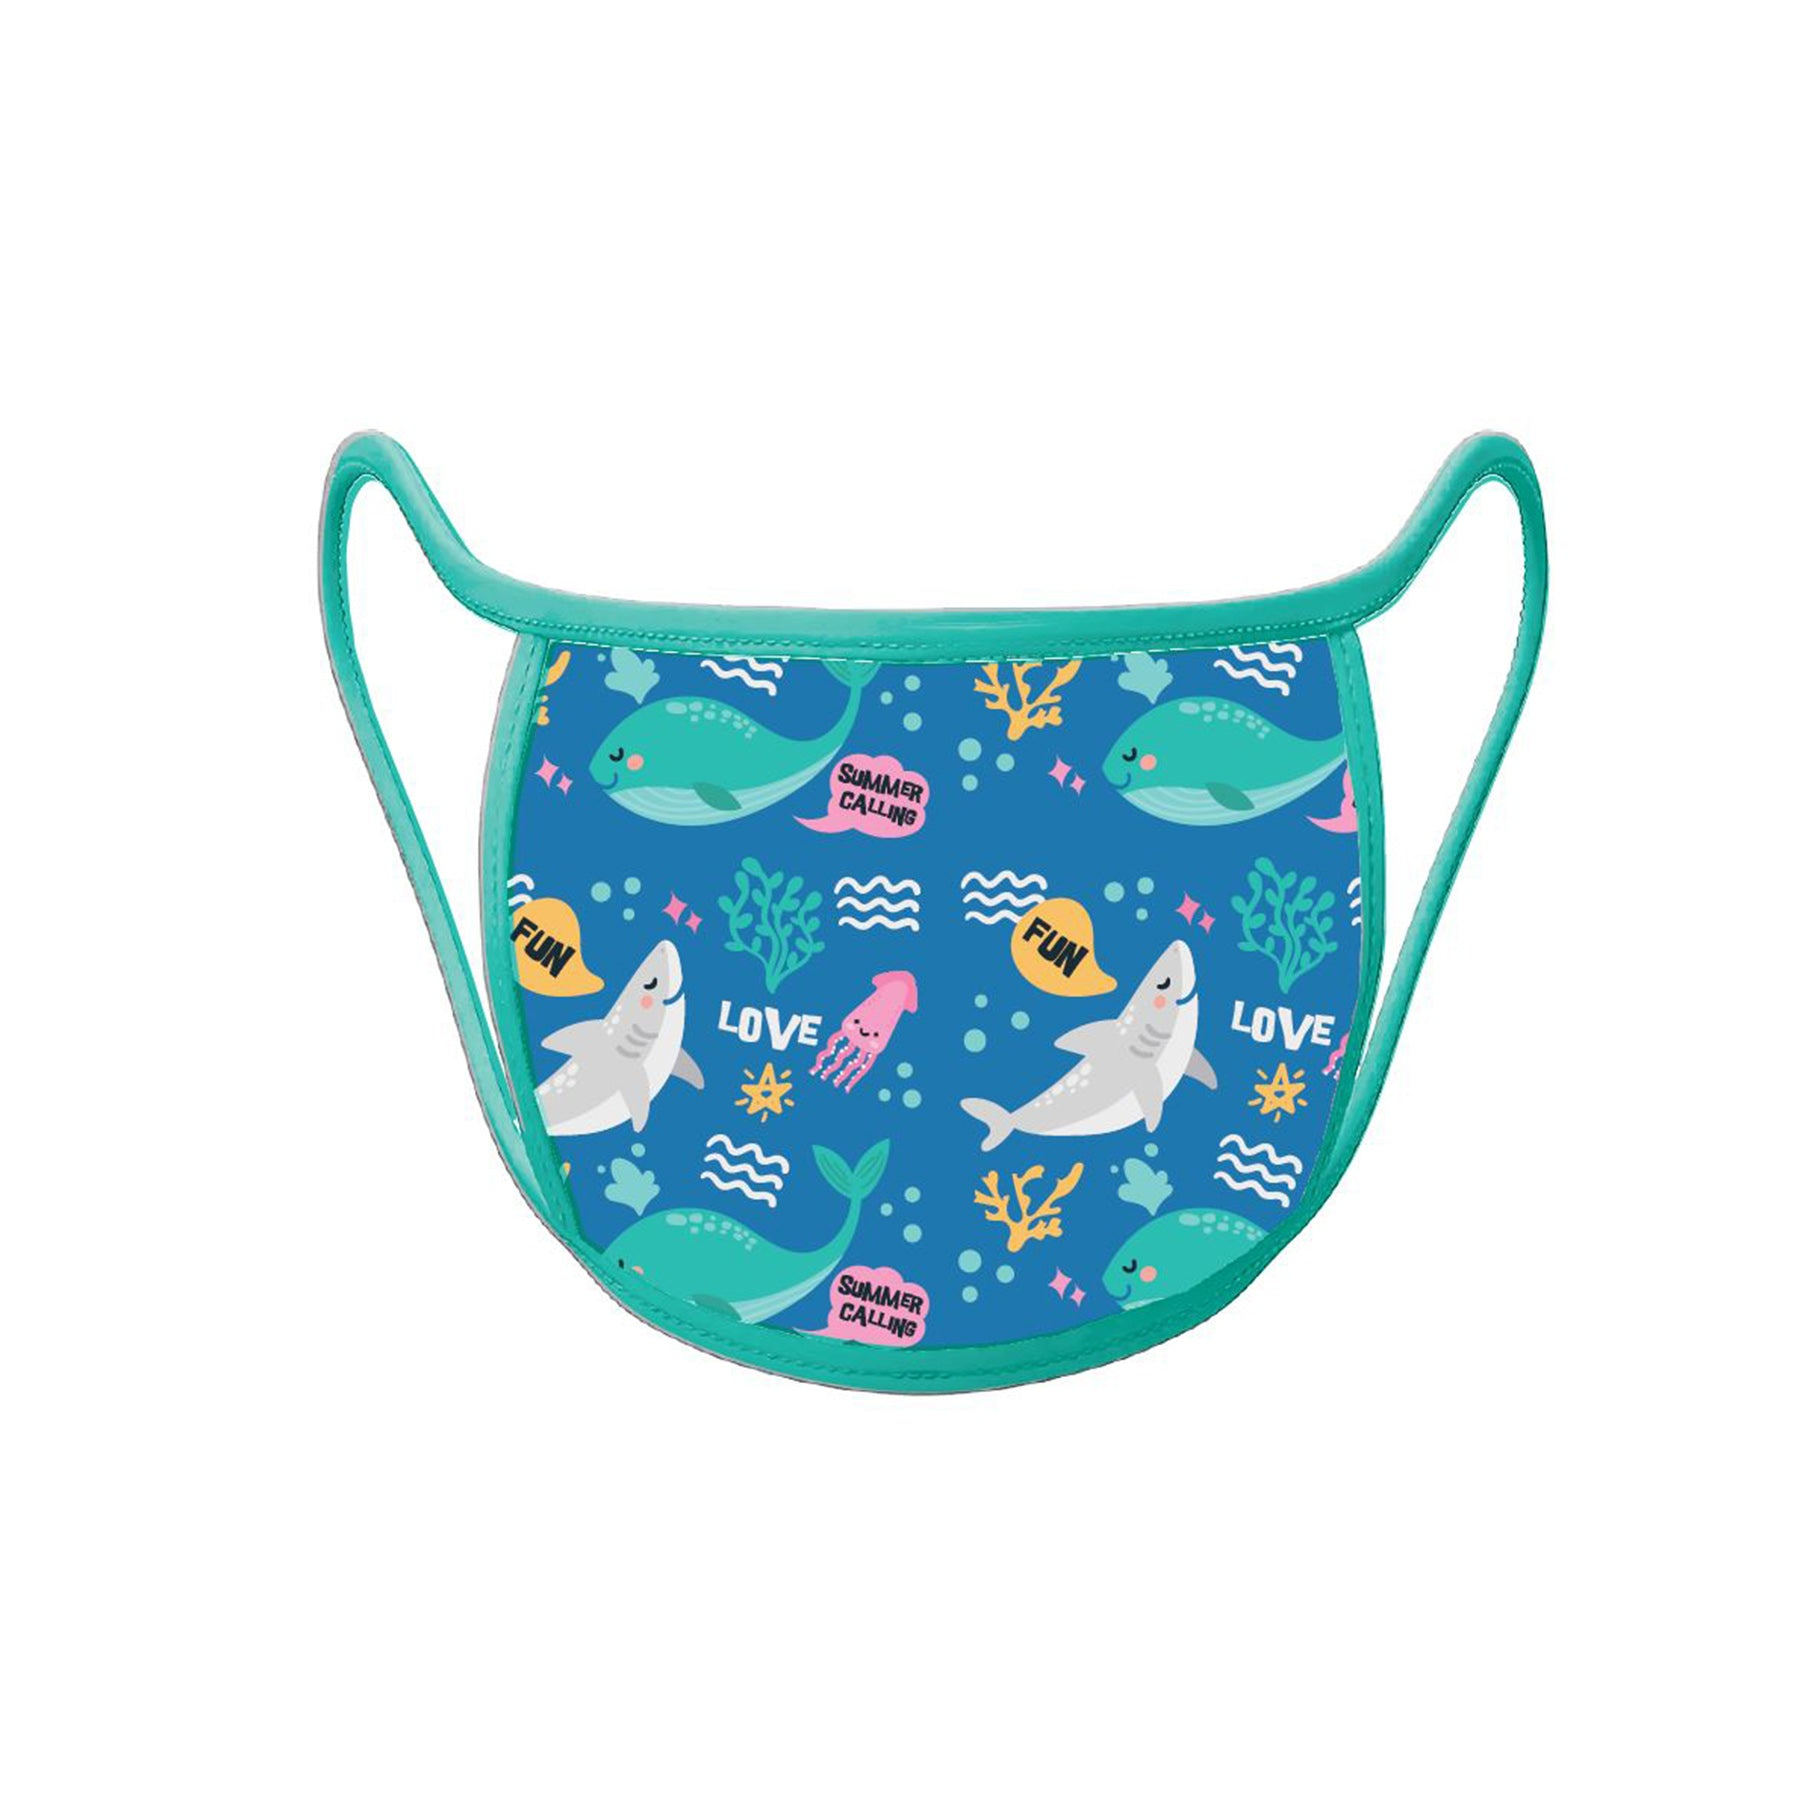 Re-useable Handmade Cloth Face Covering Cute sharks Ocean design